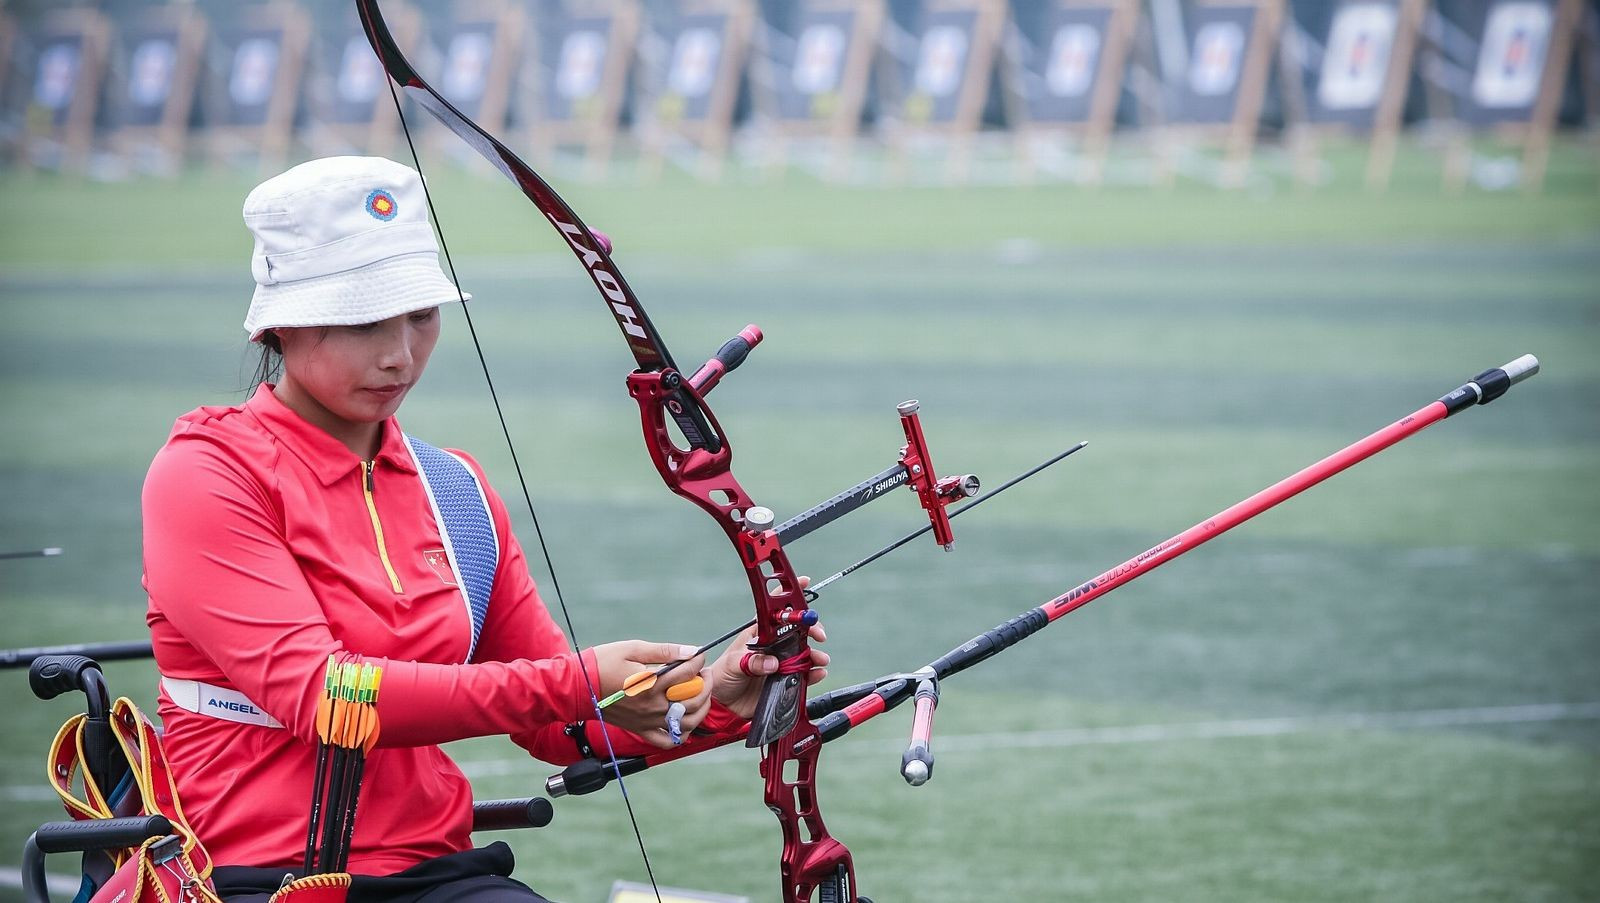 Defending champion Wu forced to settle for bronze at World Archery Para Championships